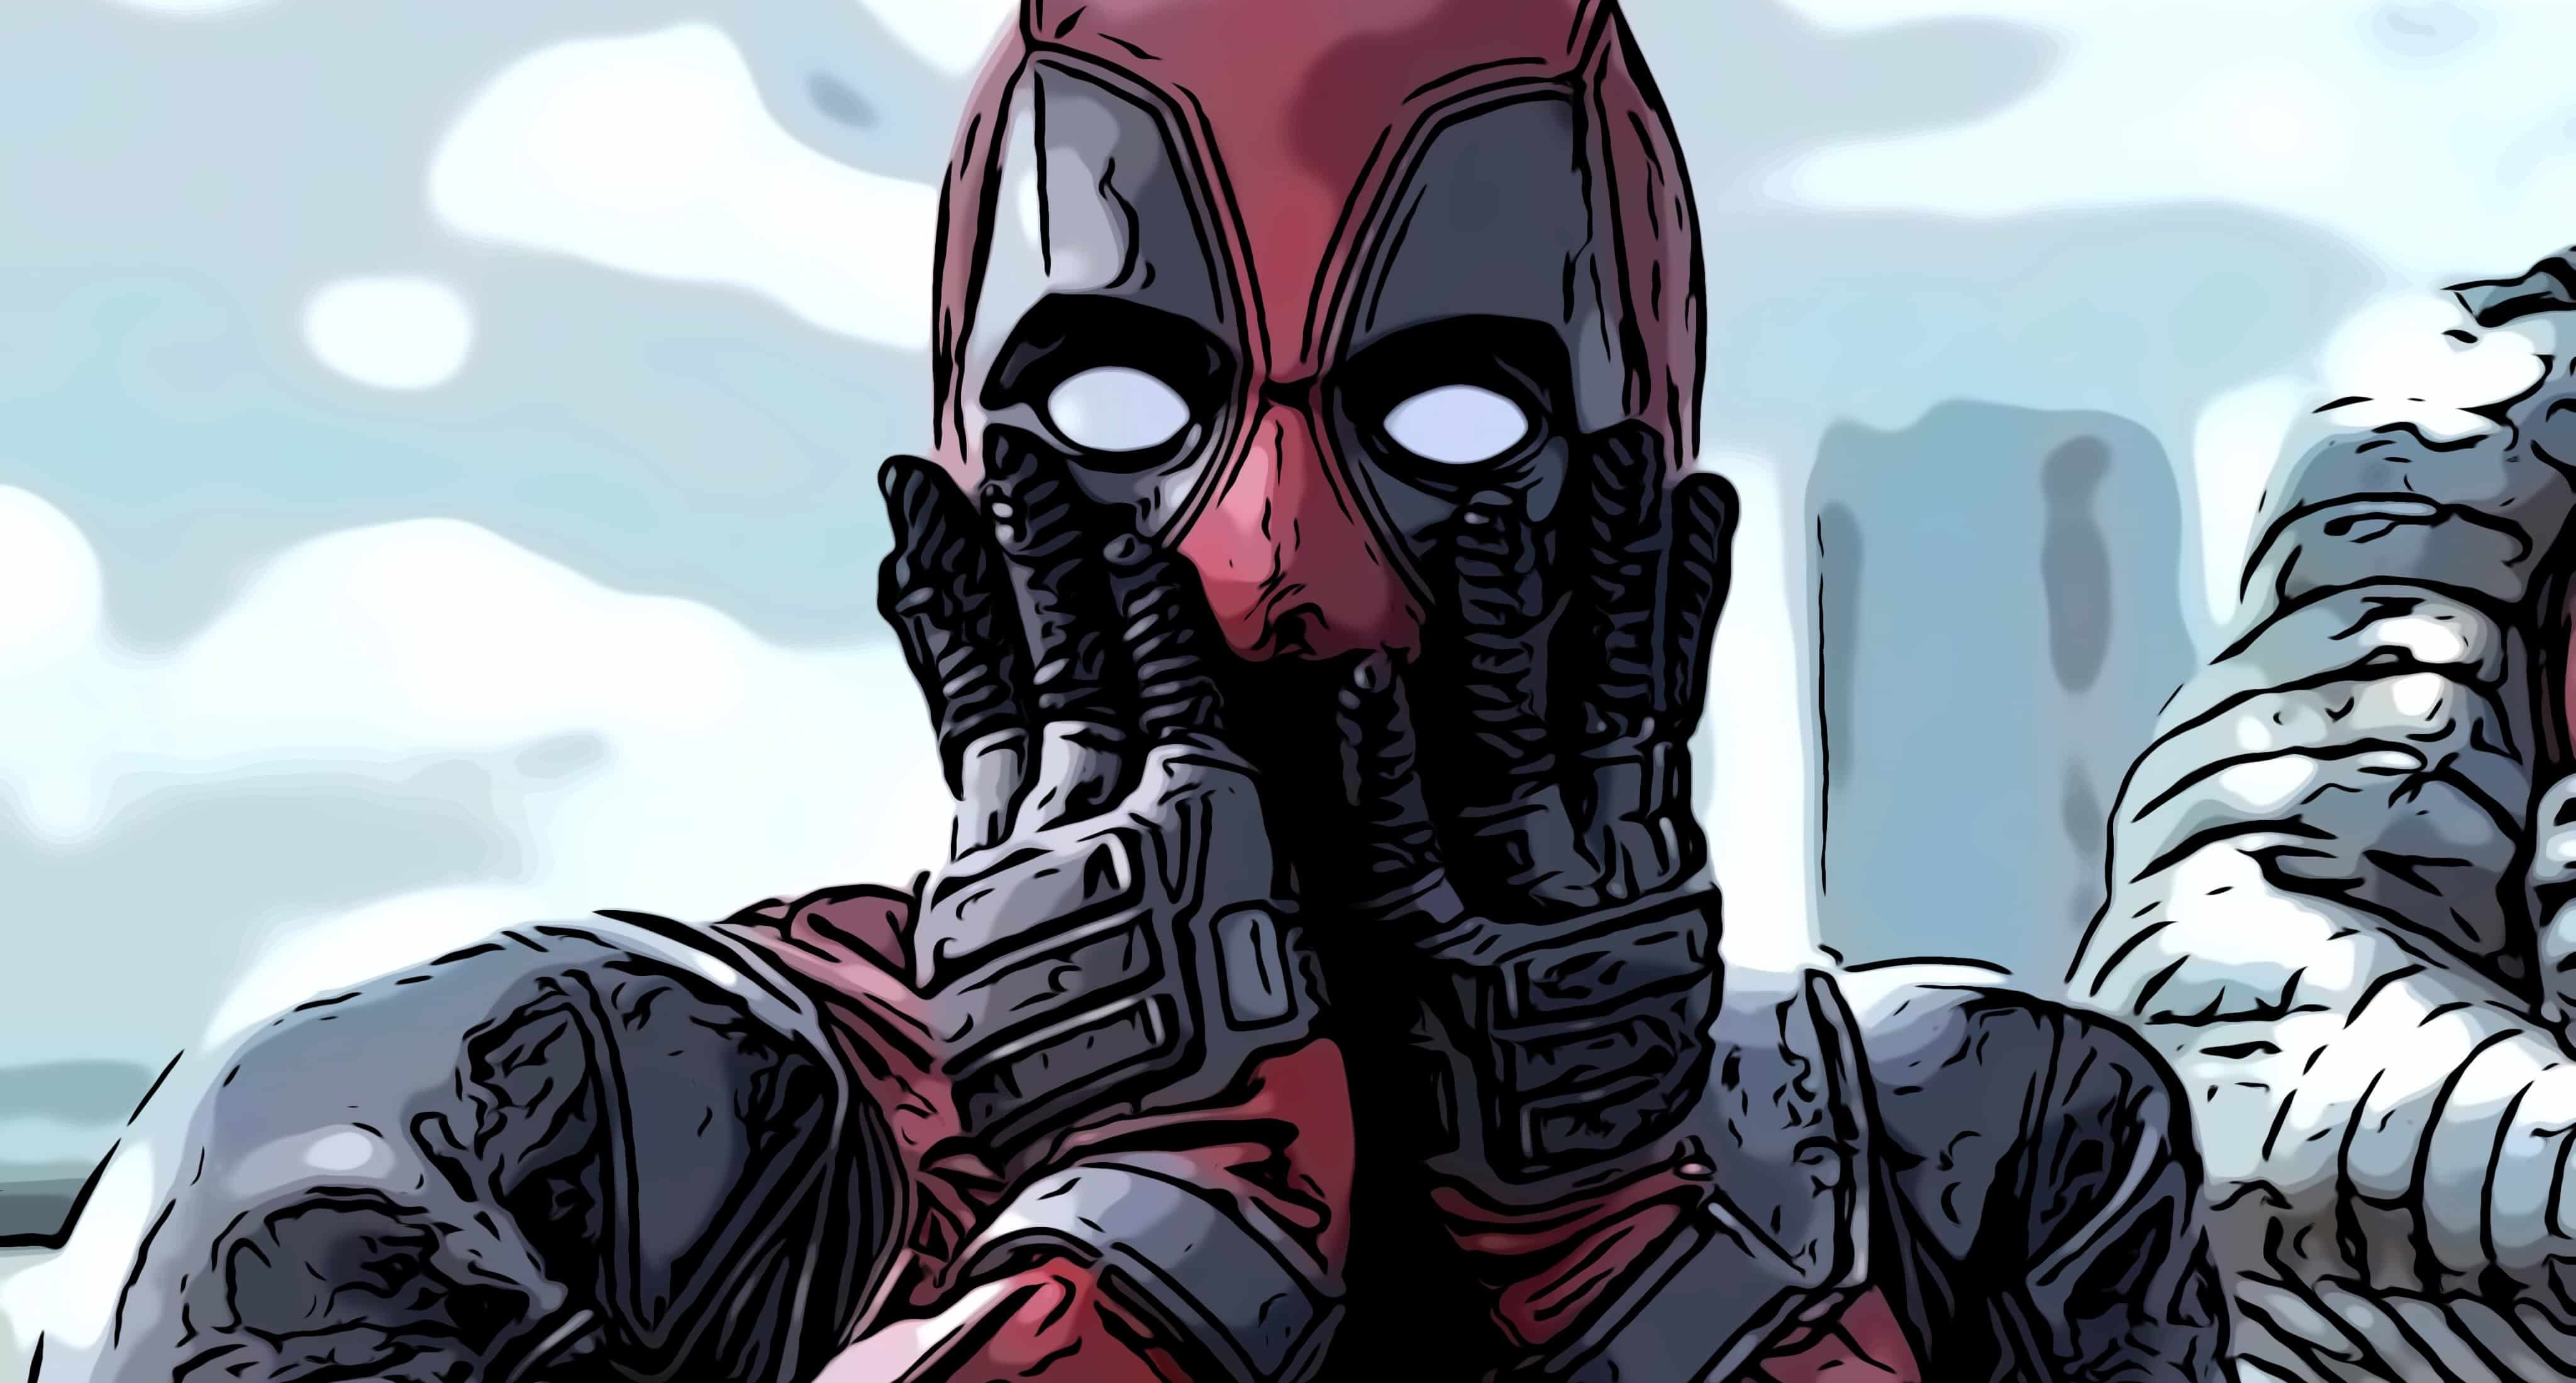 Scene from Deadpool, which has some of the funniest movie quotes ever.